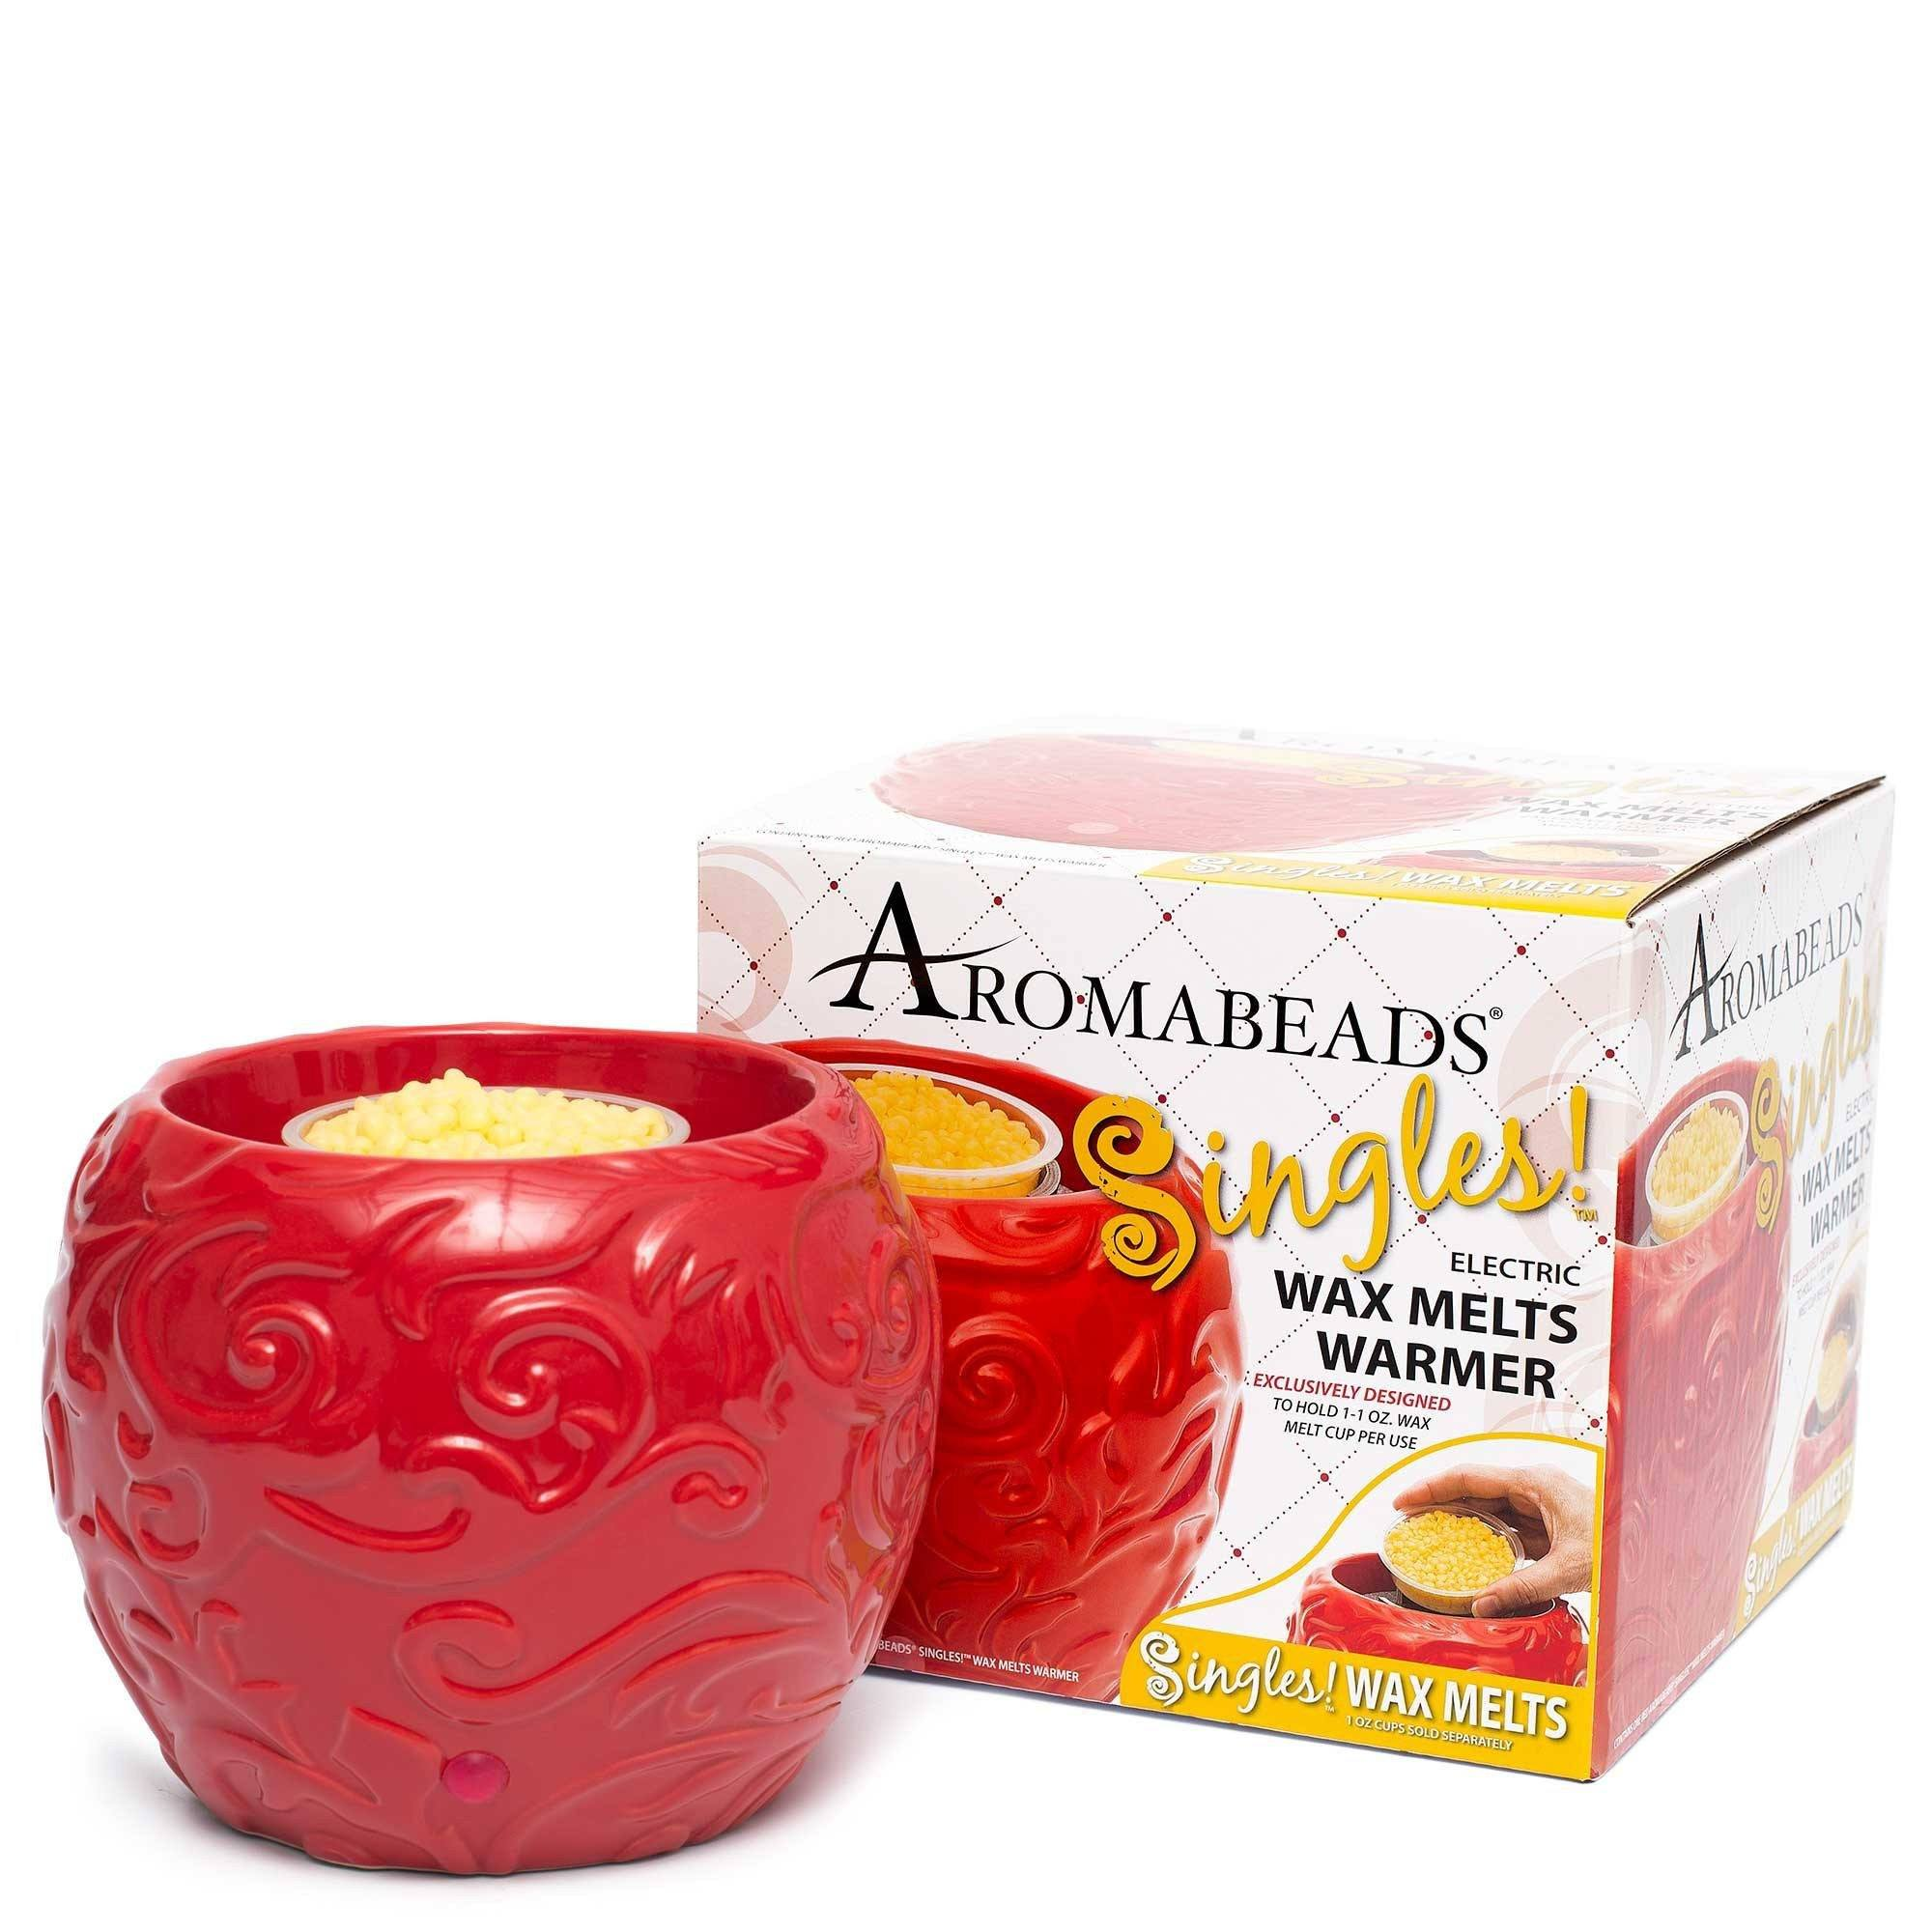 Aromabeads Singles Fresh Cotton Blossom Wax Melts 10 Pack Melts Candlemart.com $ 11.49